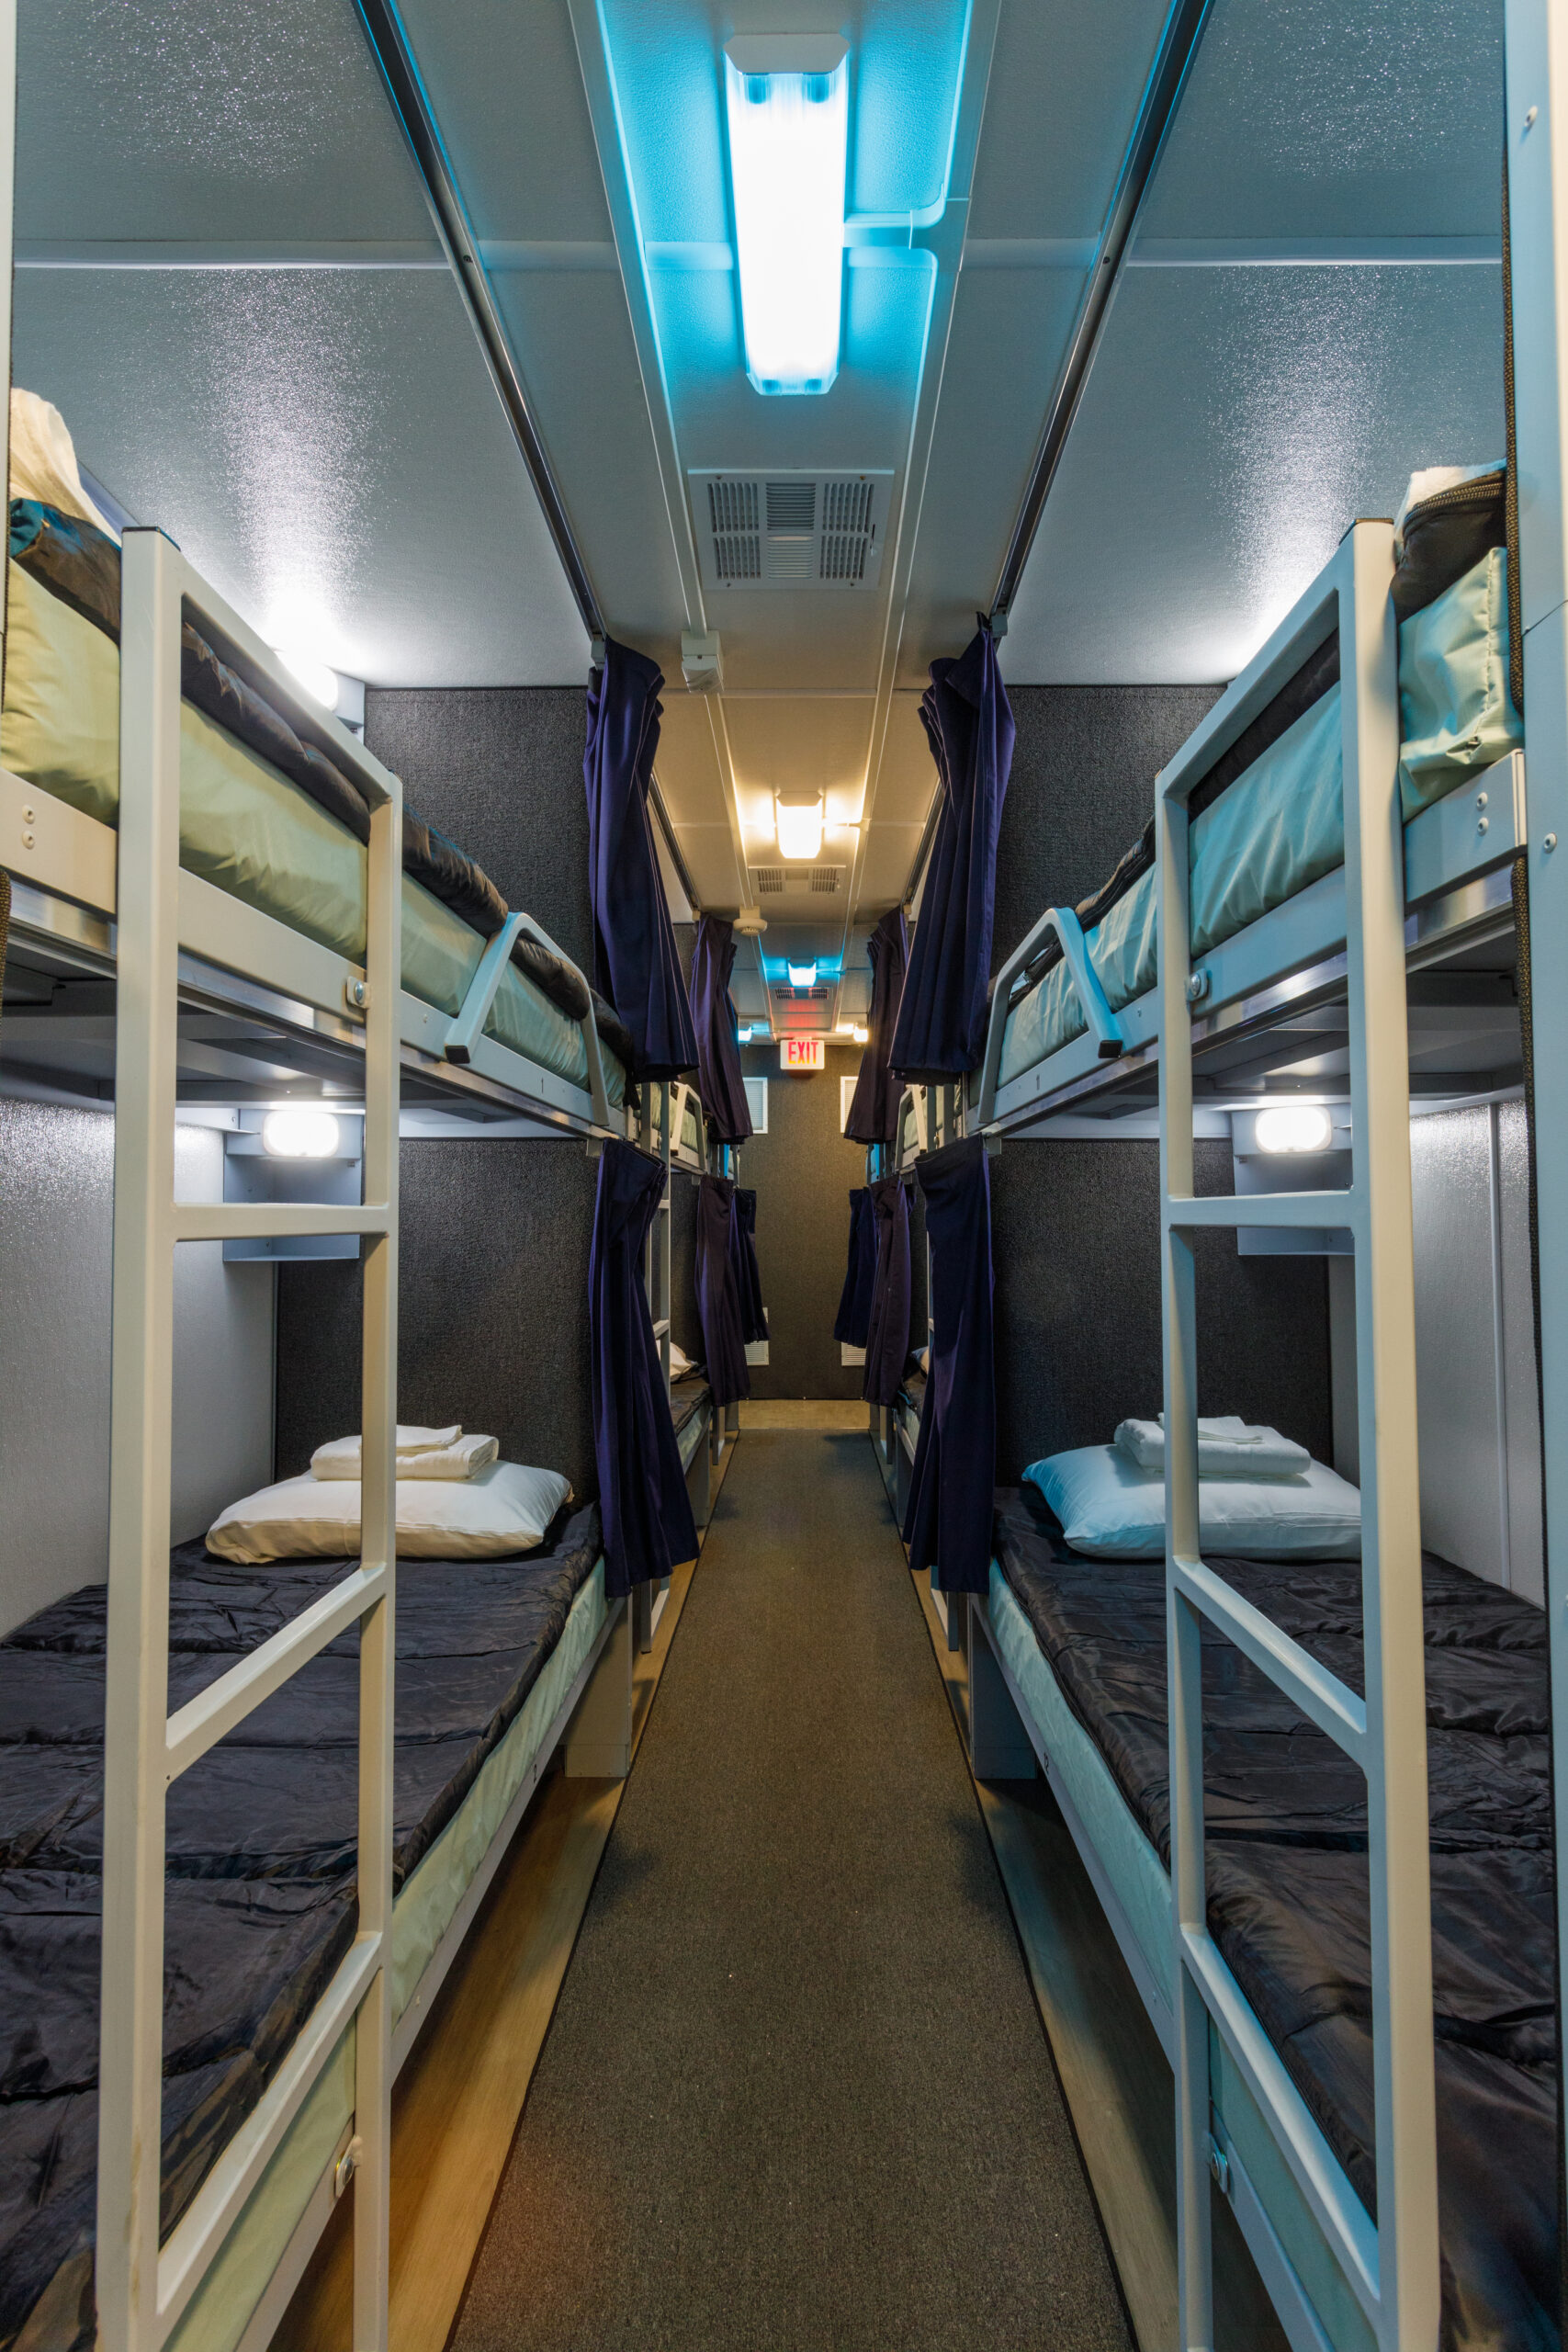 Lodging Solutions/Industrial Tents Mobile Sleeper Trailer for Emergency Relief